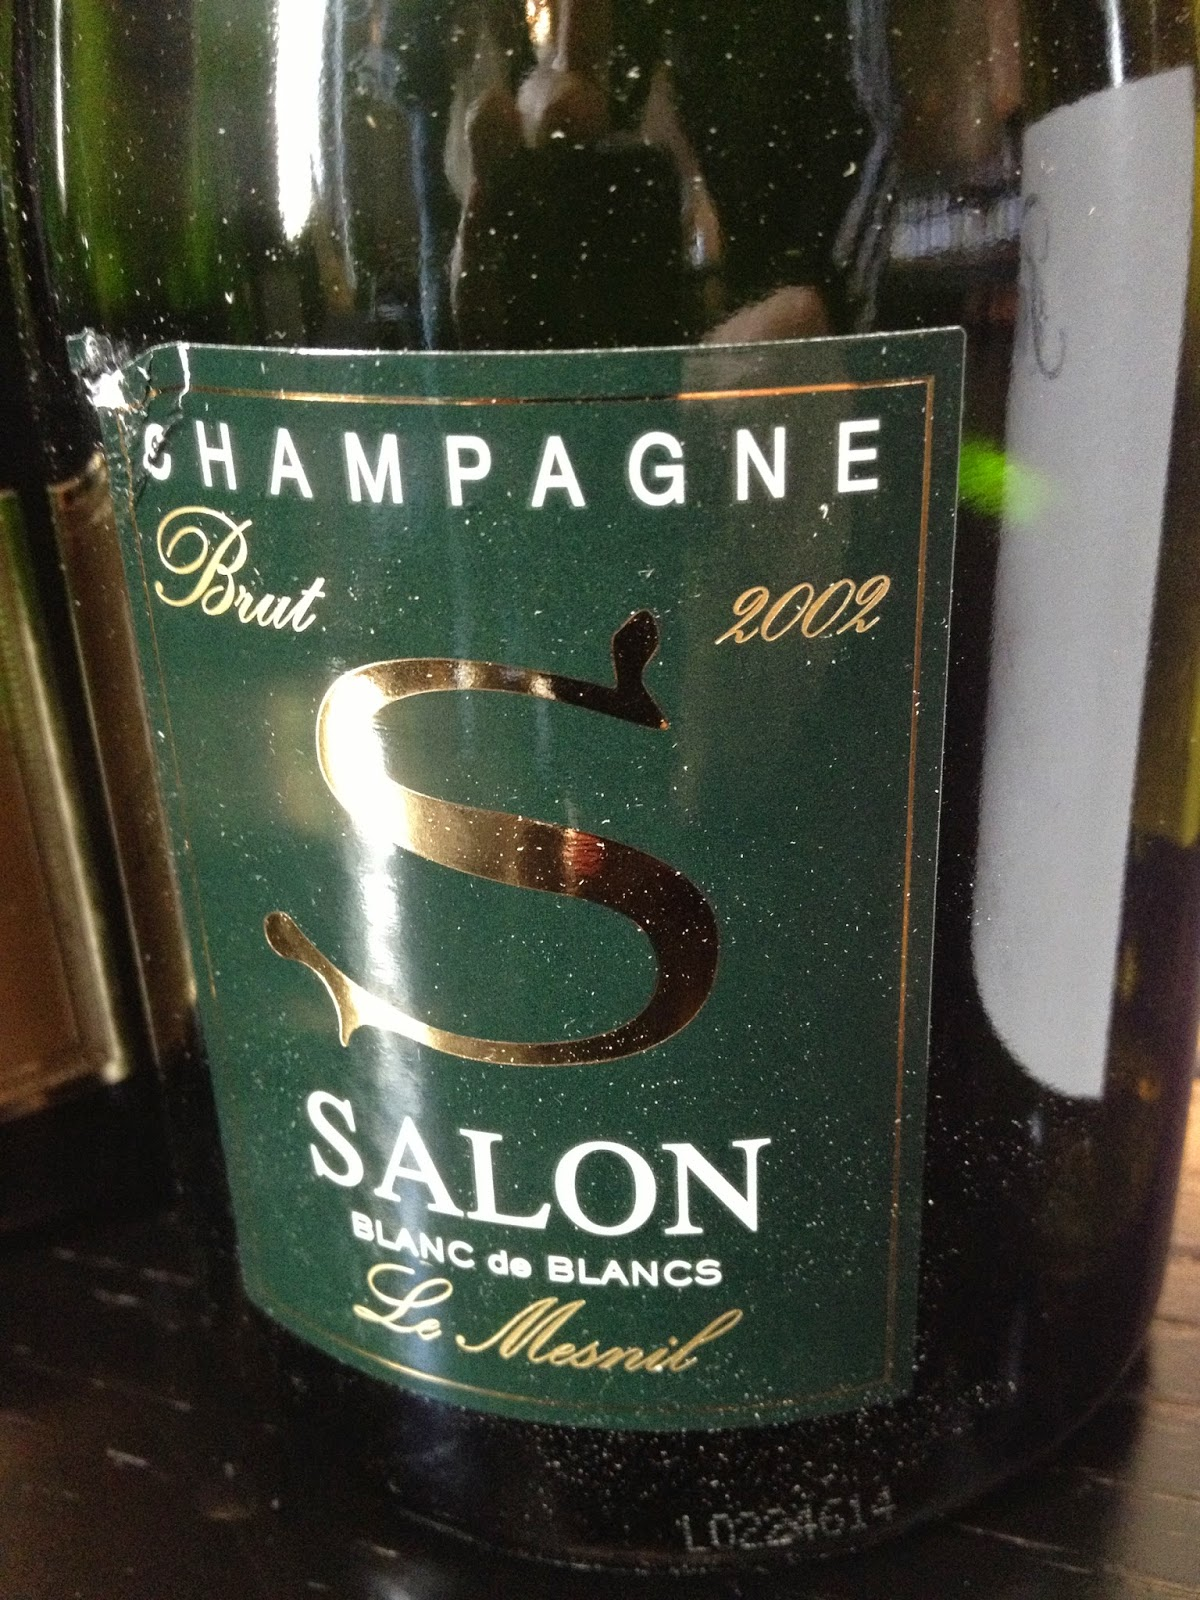 my wines and more: Red & White May news, Salon 2002, Bartolo ...